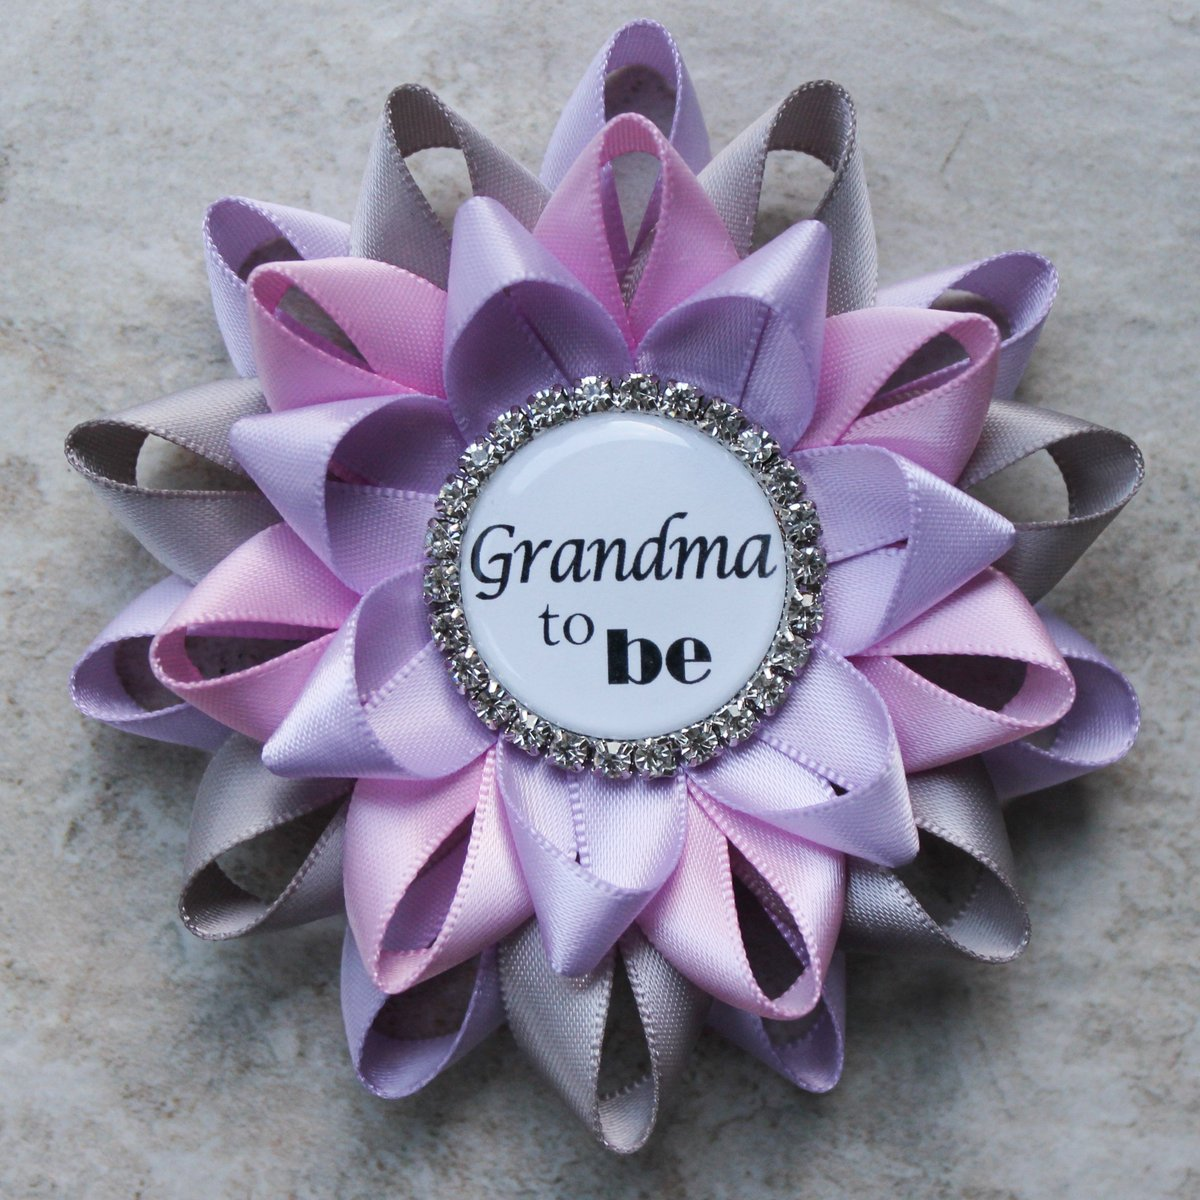 Lavender Baby Shower Decorations, Lavender and Gray Baby Shower Pins, Lavender, Pink, Baby Girl Shower Pins, Orchid, Gray, Bubblegum https://t.co/xcvk5vr05O #etsy #gifts #shopsmall #smallbiz #shopping #style #etsyshop #ecommerce https://t.co/ipqEpd5IW9